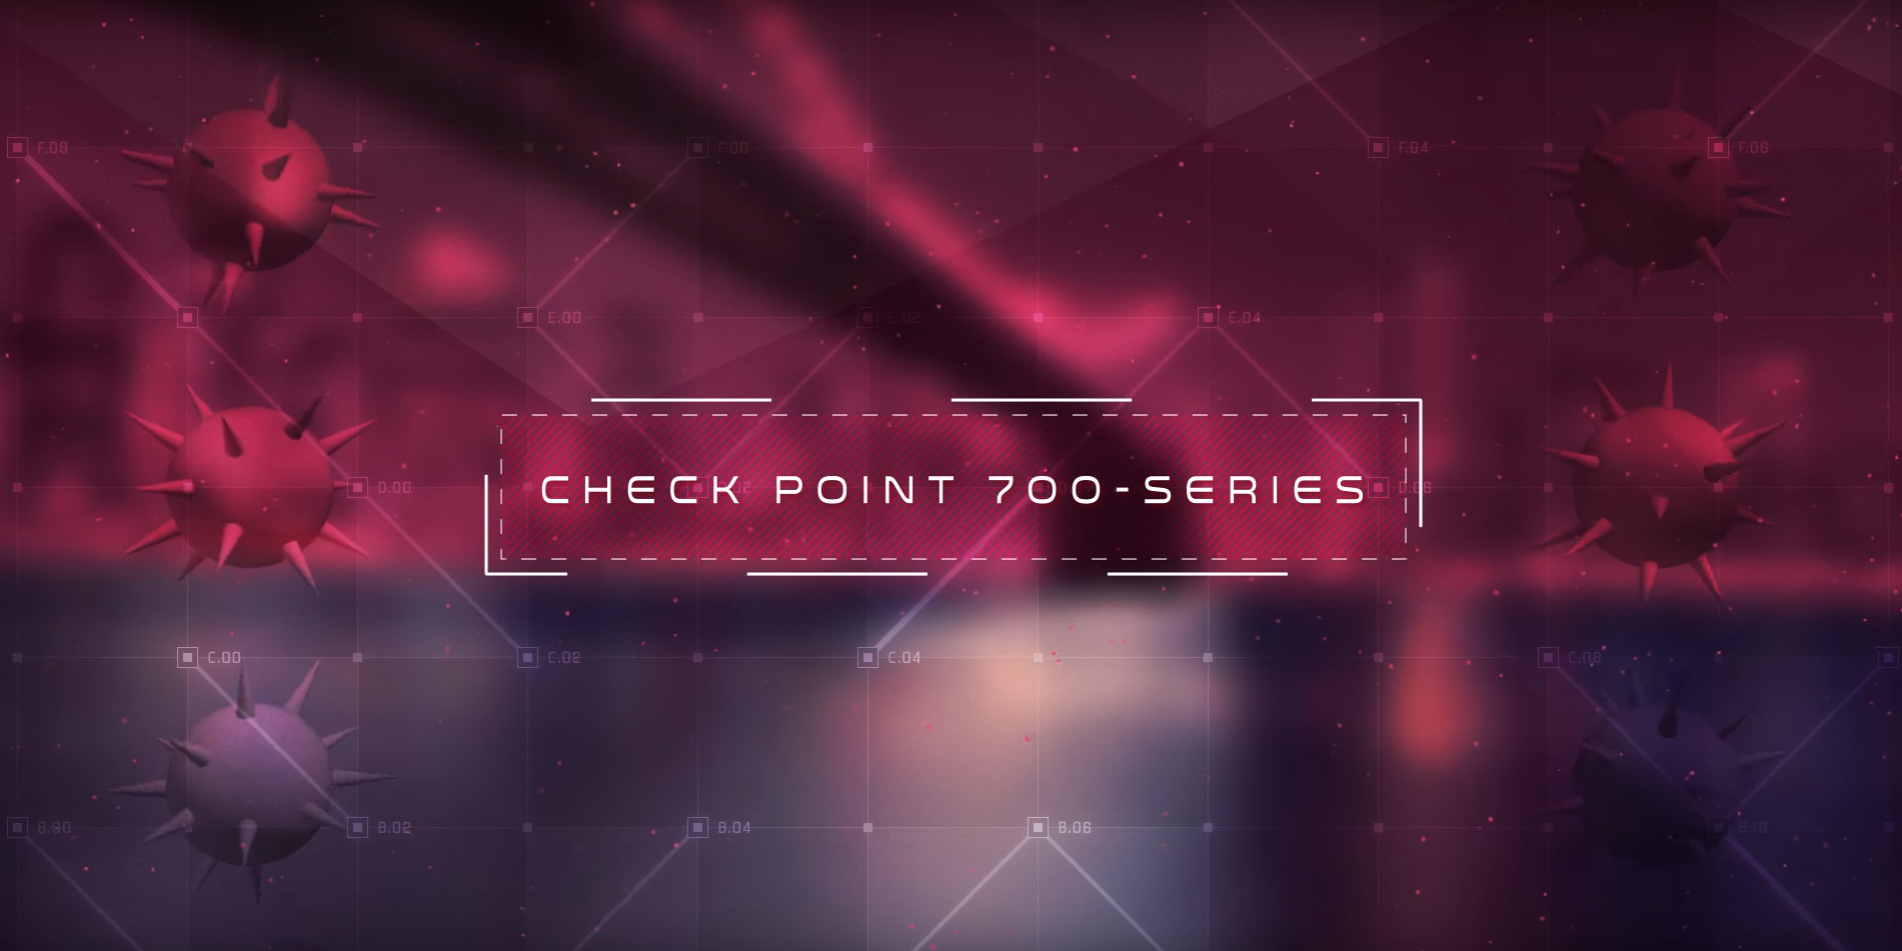 Check Point 700 Series Appliances for Small Business